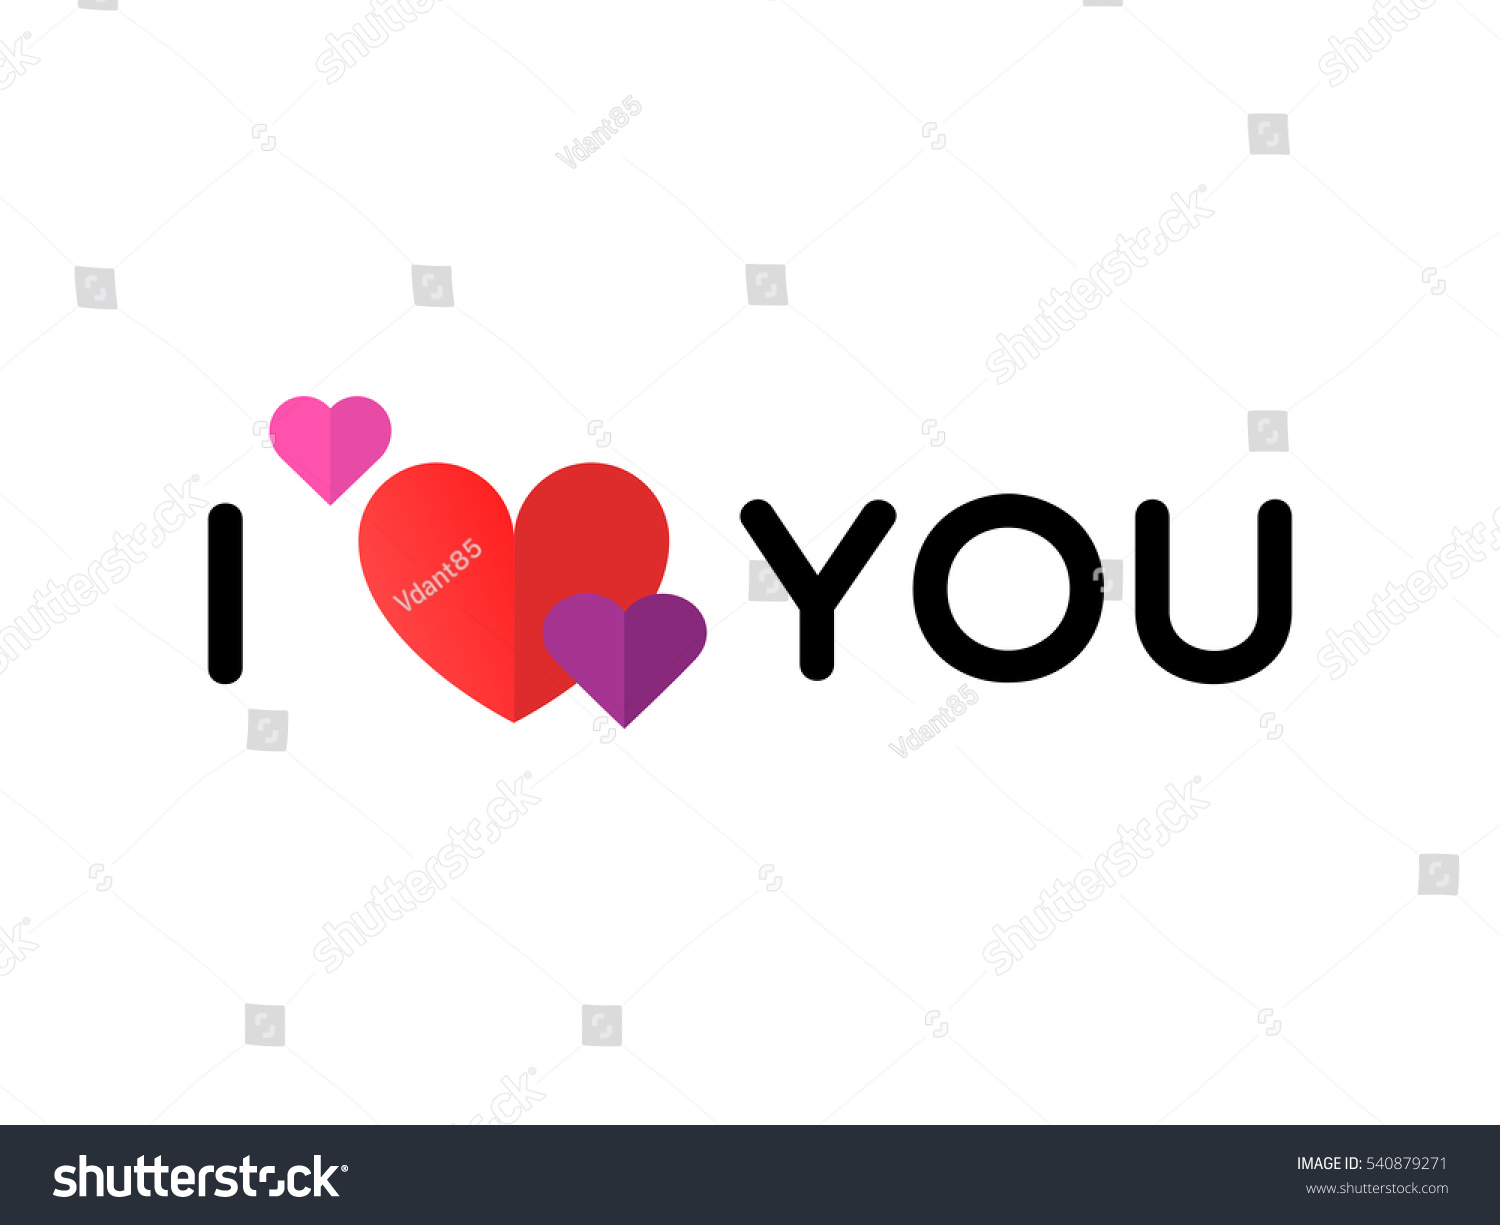 Love You Red Heart Symbol On Stock Vector Royalty Free 540879271